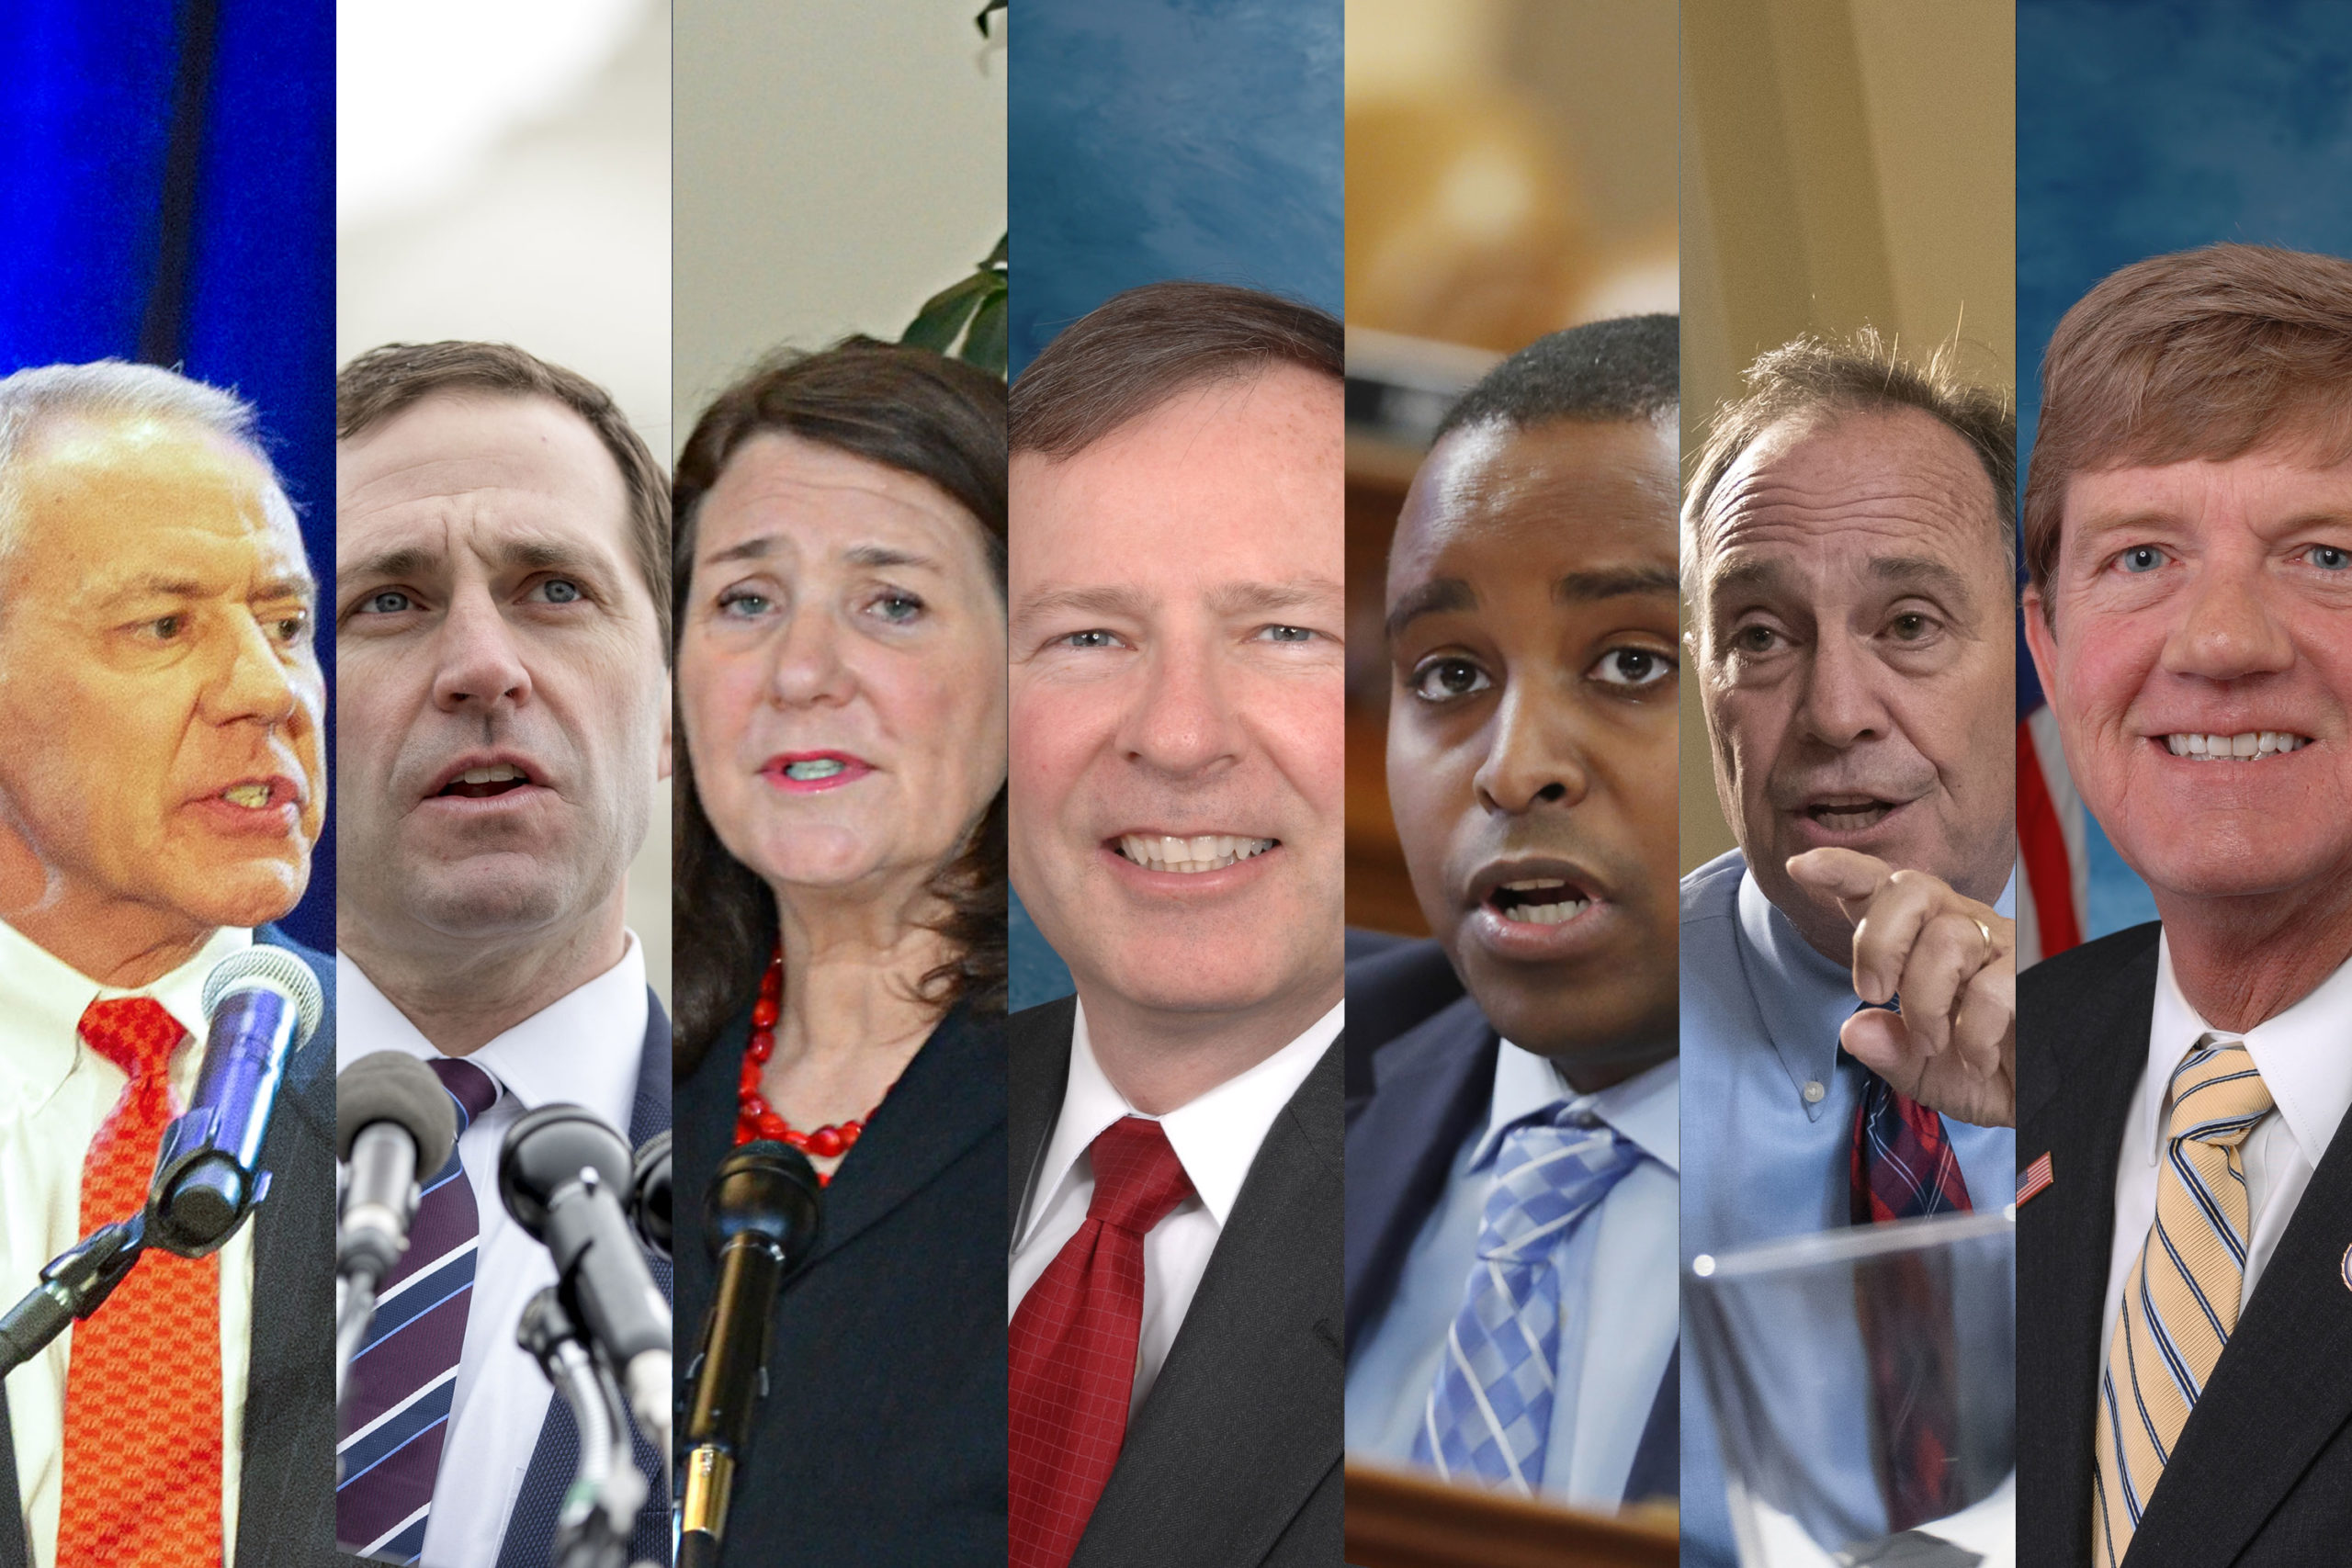 Colorado's delegation to the House of Representatives, left to right, Ken Buck, R, Democrats Jason Crow and Diana DeGette, Republican Doug Lamborn, Democrats Joe Neguse and Ed Perlmutter and Republican Scott Tipton.